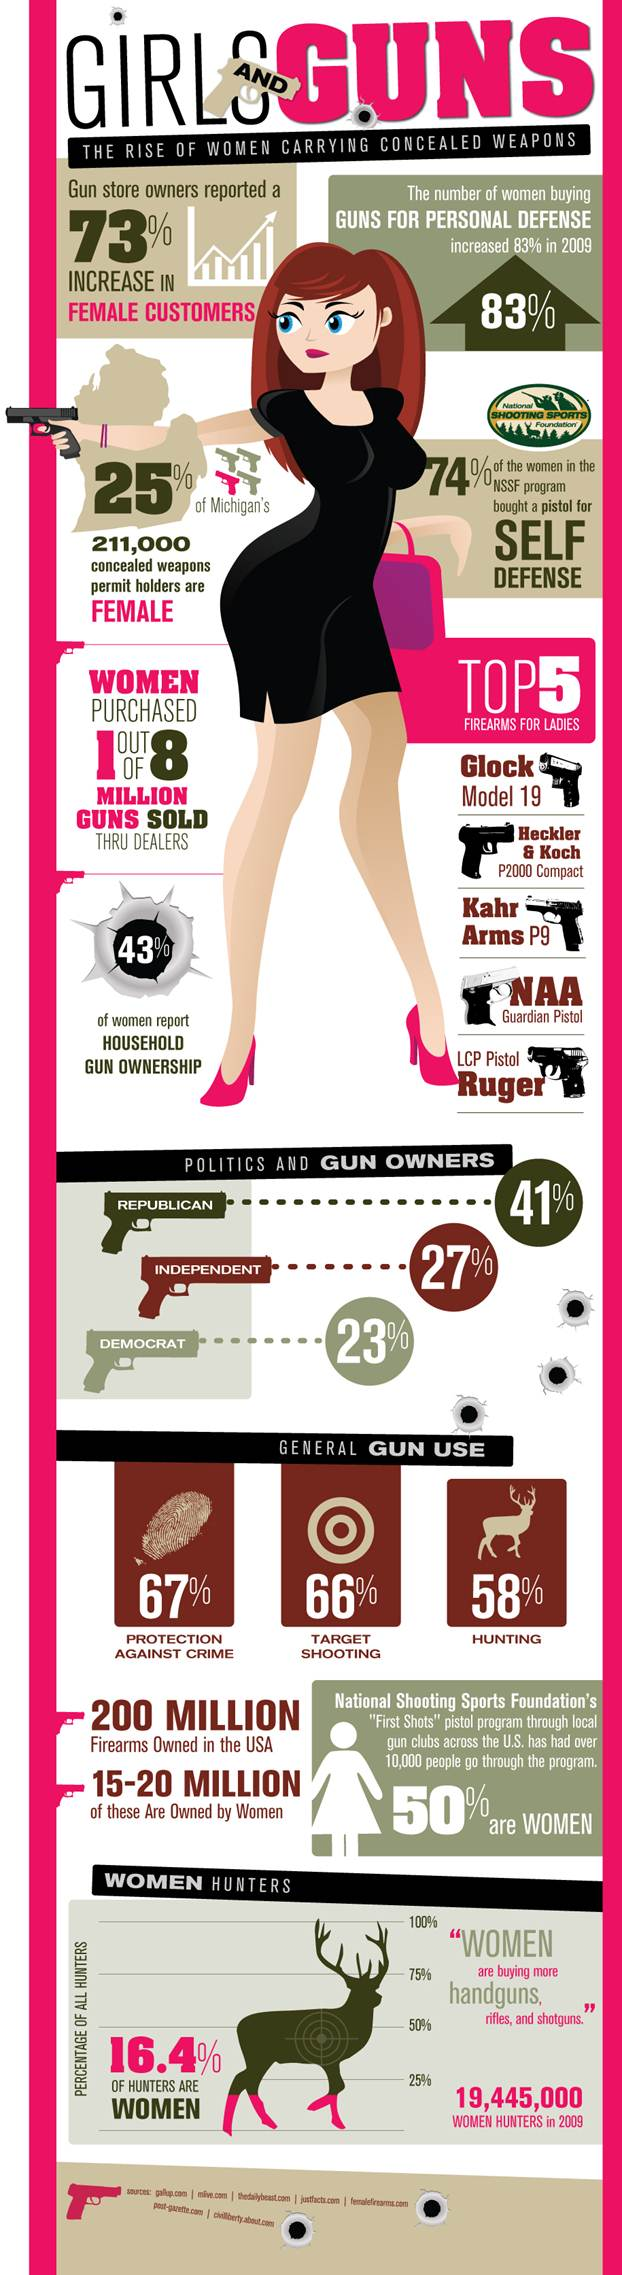 Women Carrying Concealed Weapons